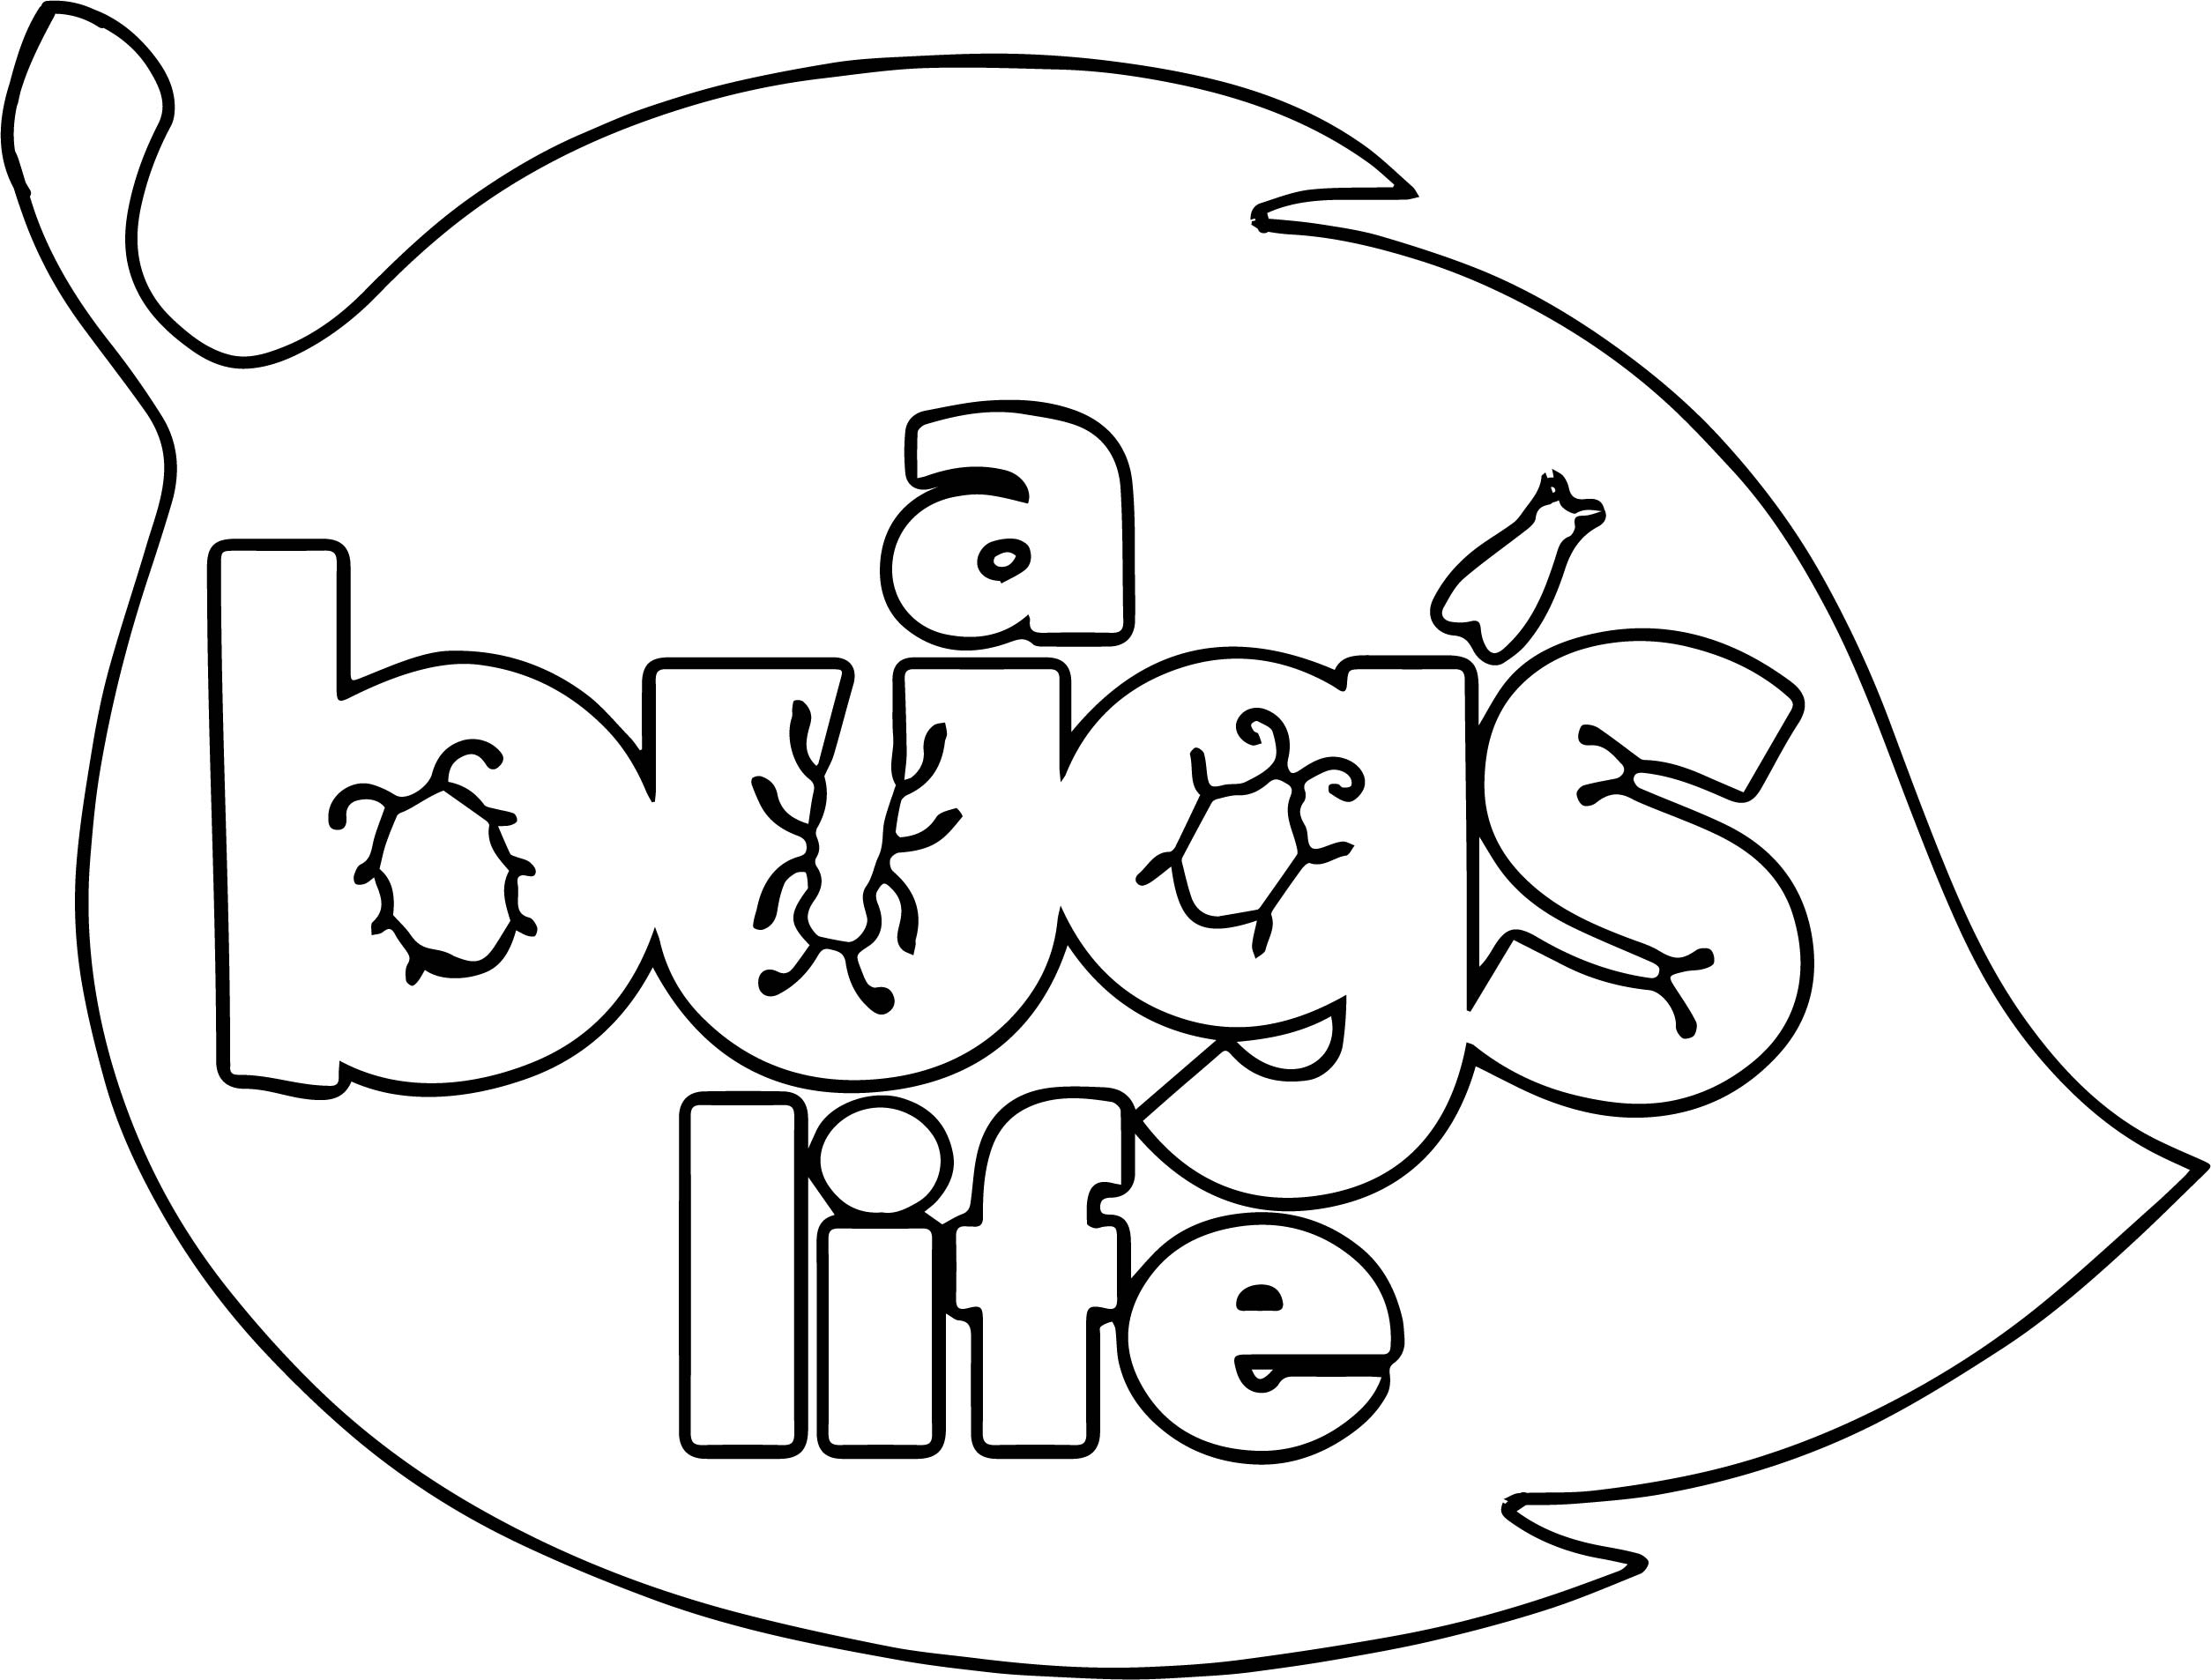 A bugs life logo leaf coloring page for Bugs life coloring pages